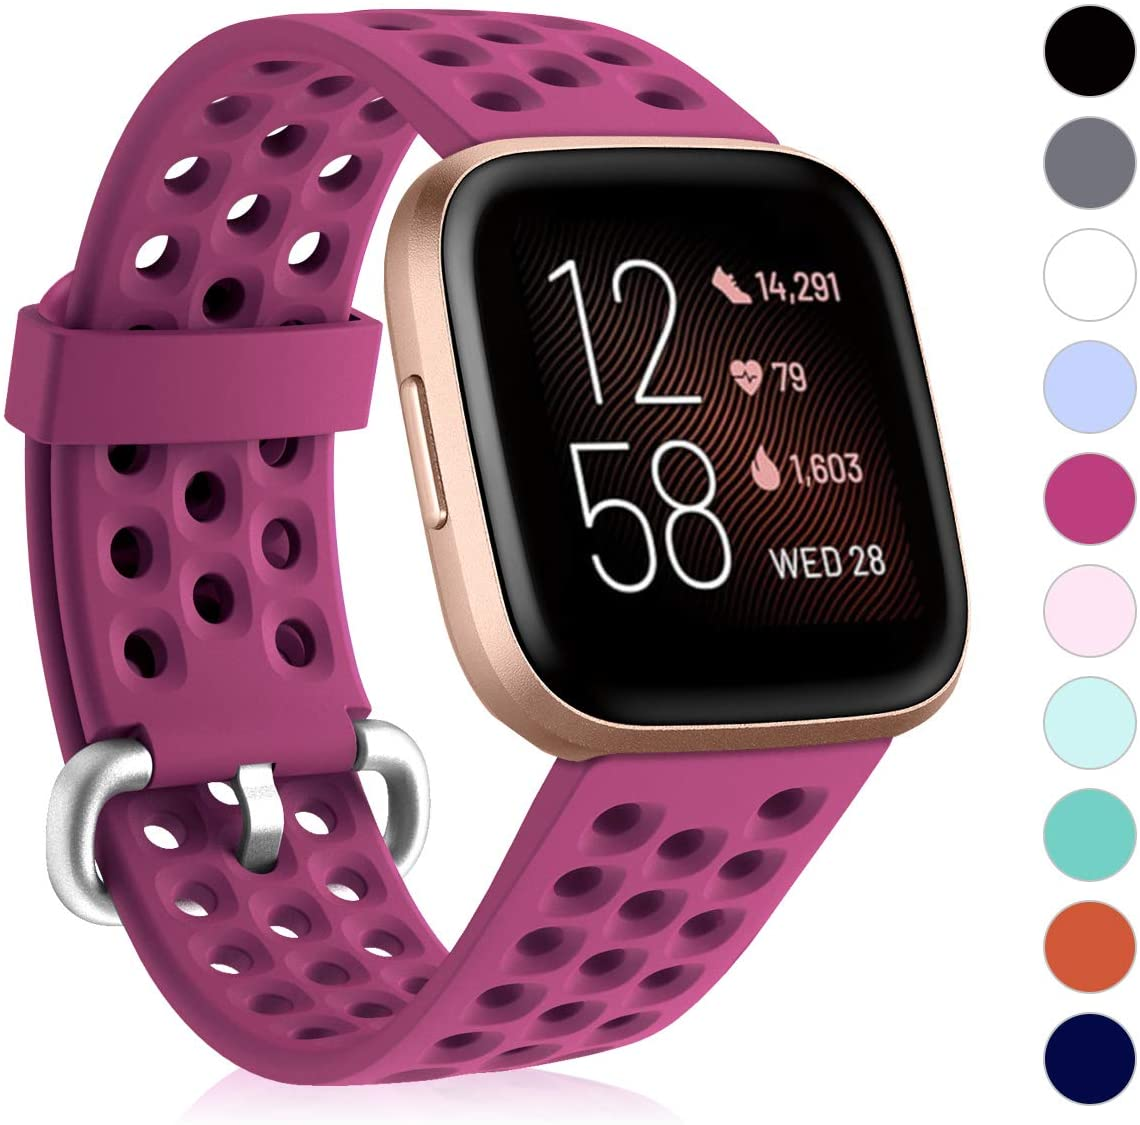 CAVN Sport Bands Compatible with Fitbit Versa 2 / Versa/Versa Lite Bands for Women Men, Soft Waterproof Breathable Silicone Replacement Smart Watch Strap, Wine, L(6.5-9.1in)